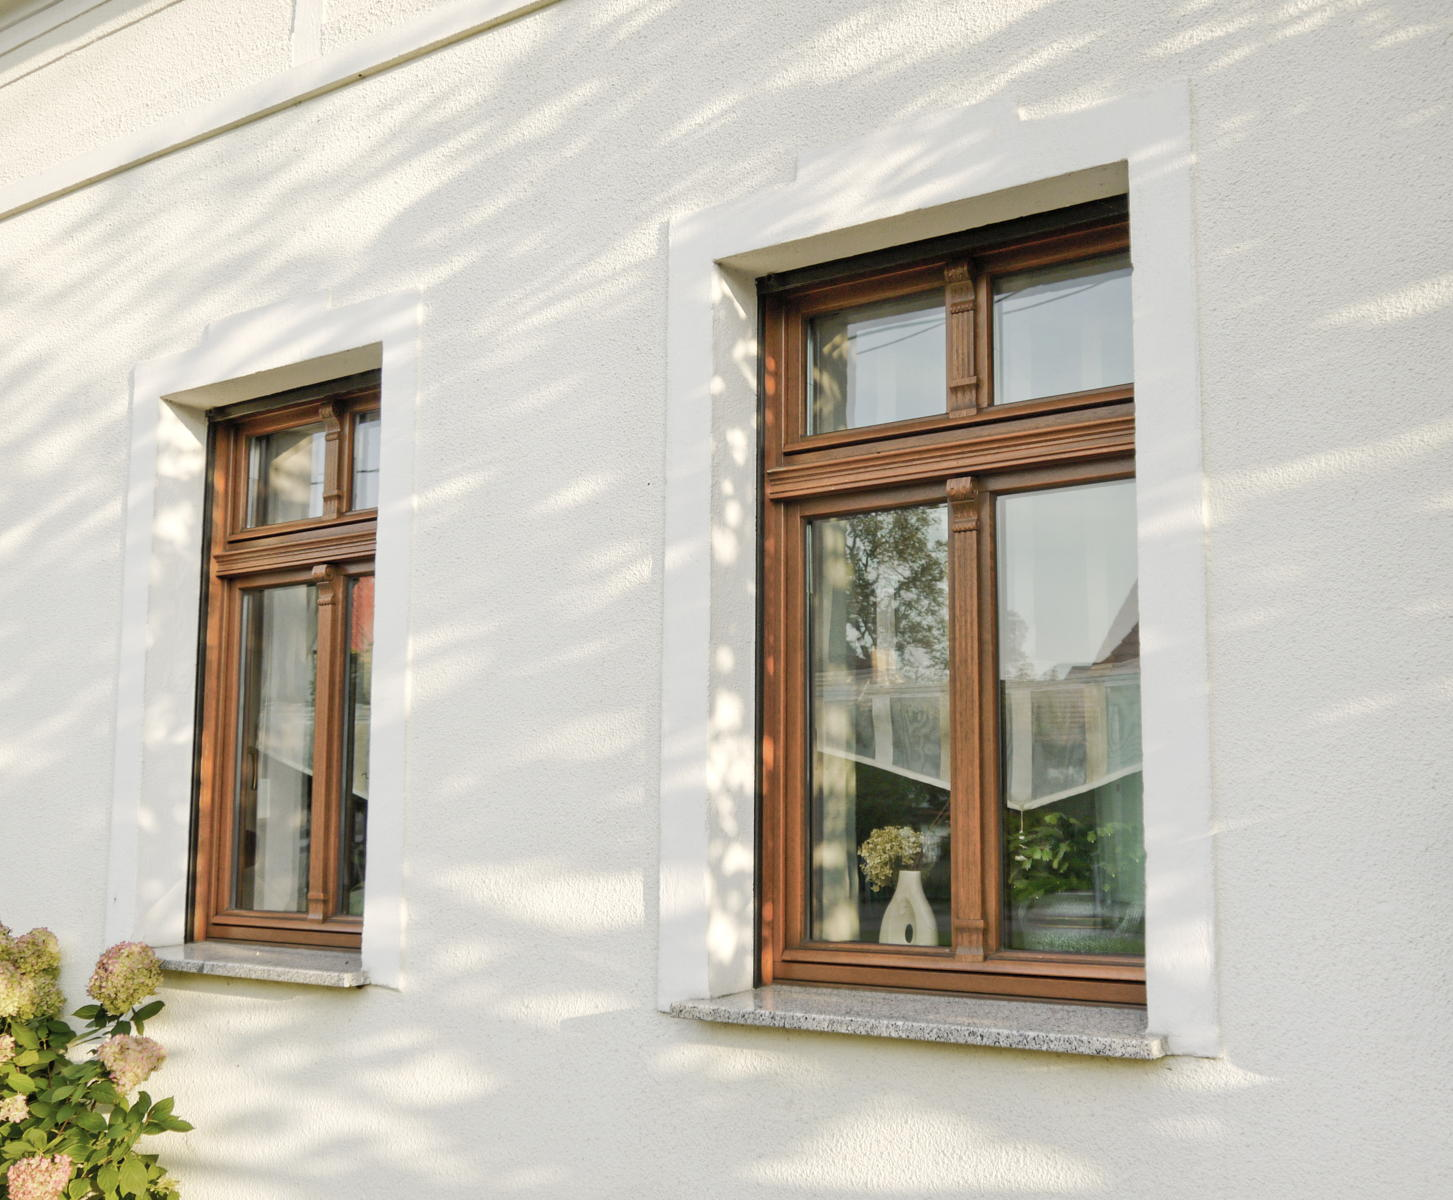 holzfenster kastenfenster in berlin brandenburg. Black Bedroom Furniture Sets. Home Design Ideas